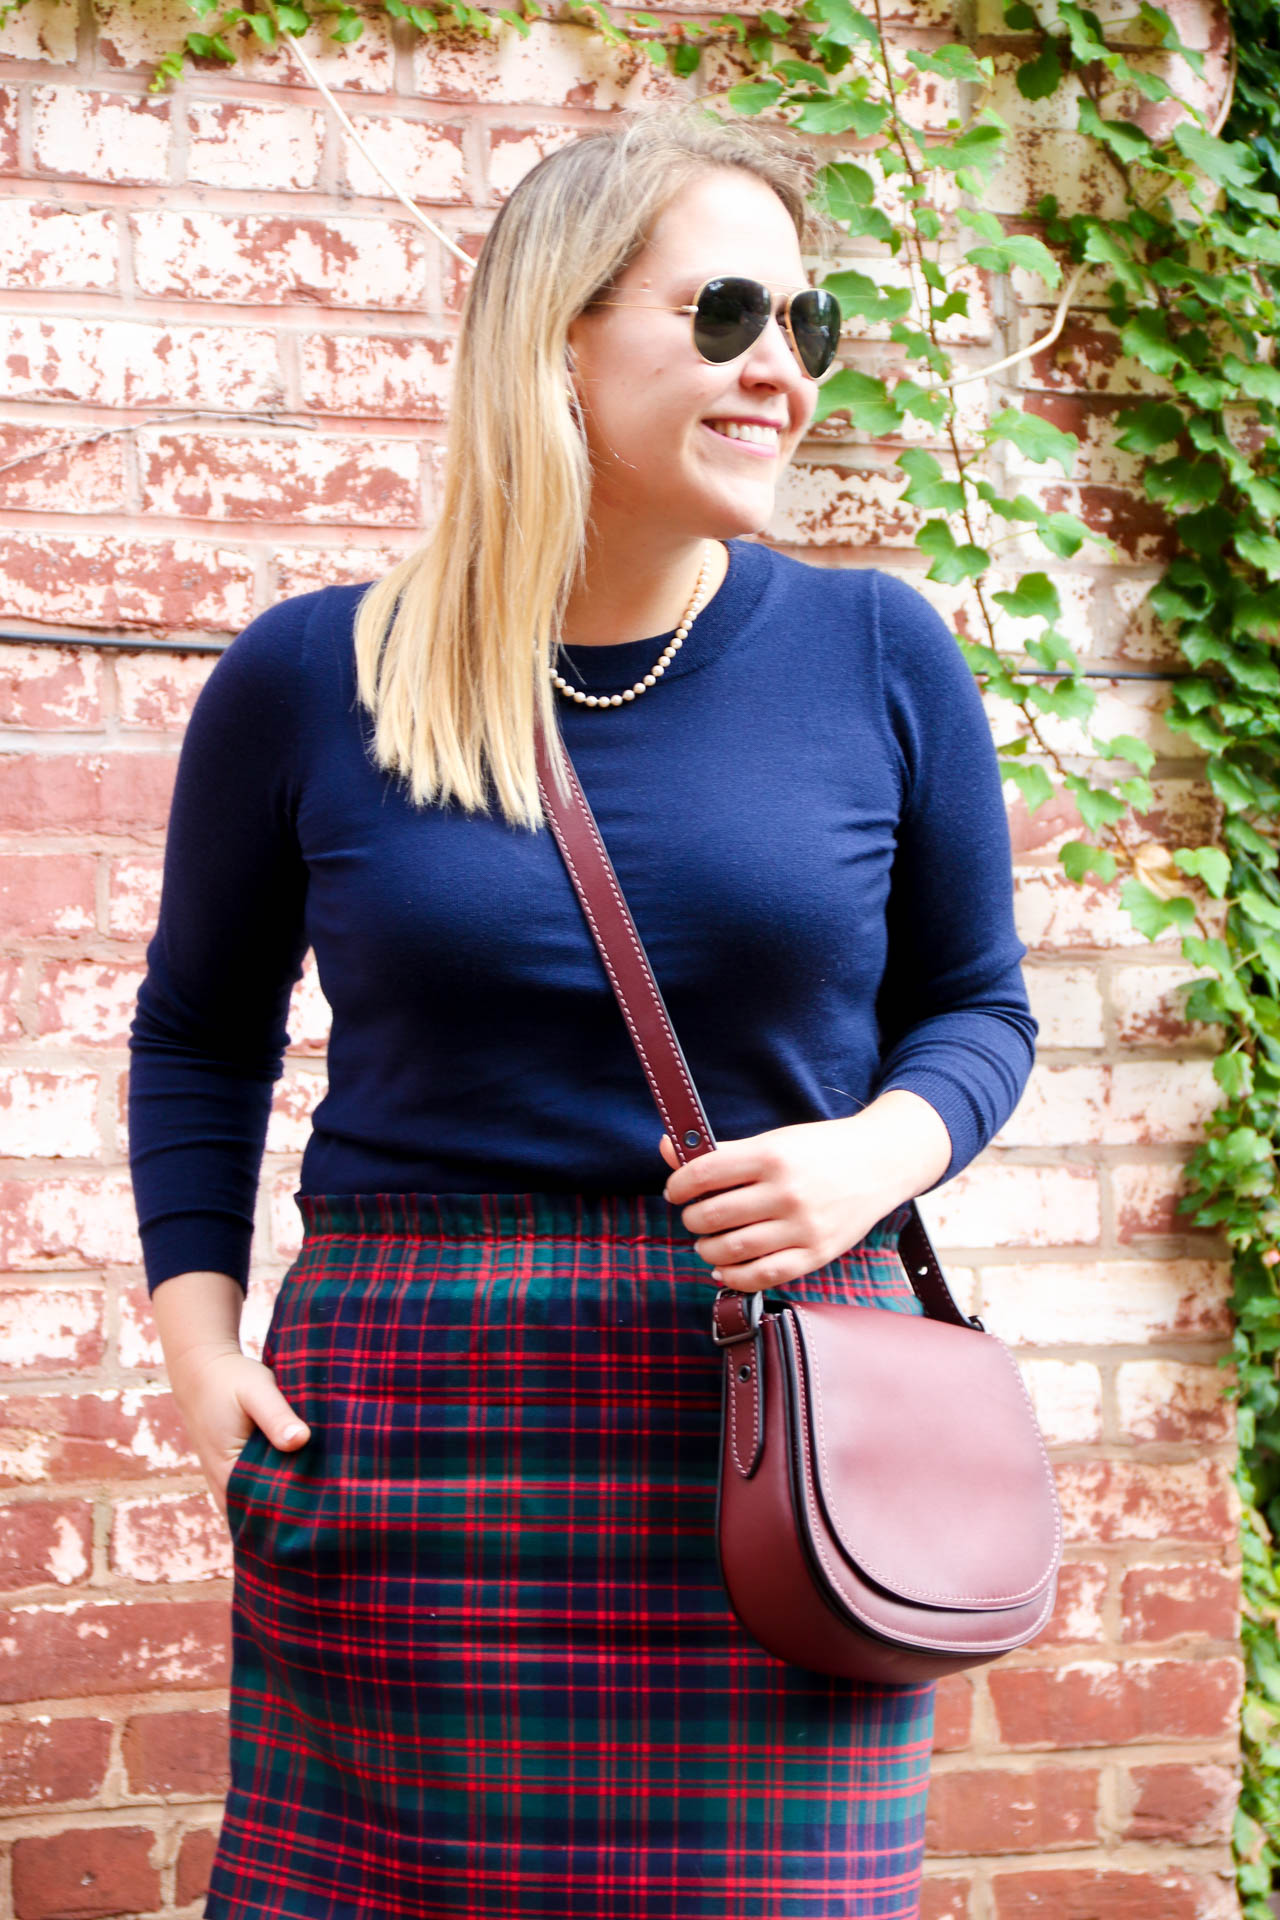 J.Crew Tippi Sweater | @dcgirlinpearls